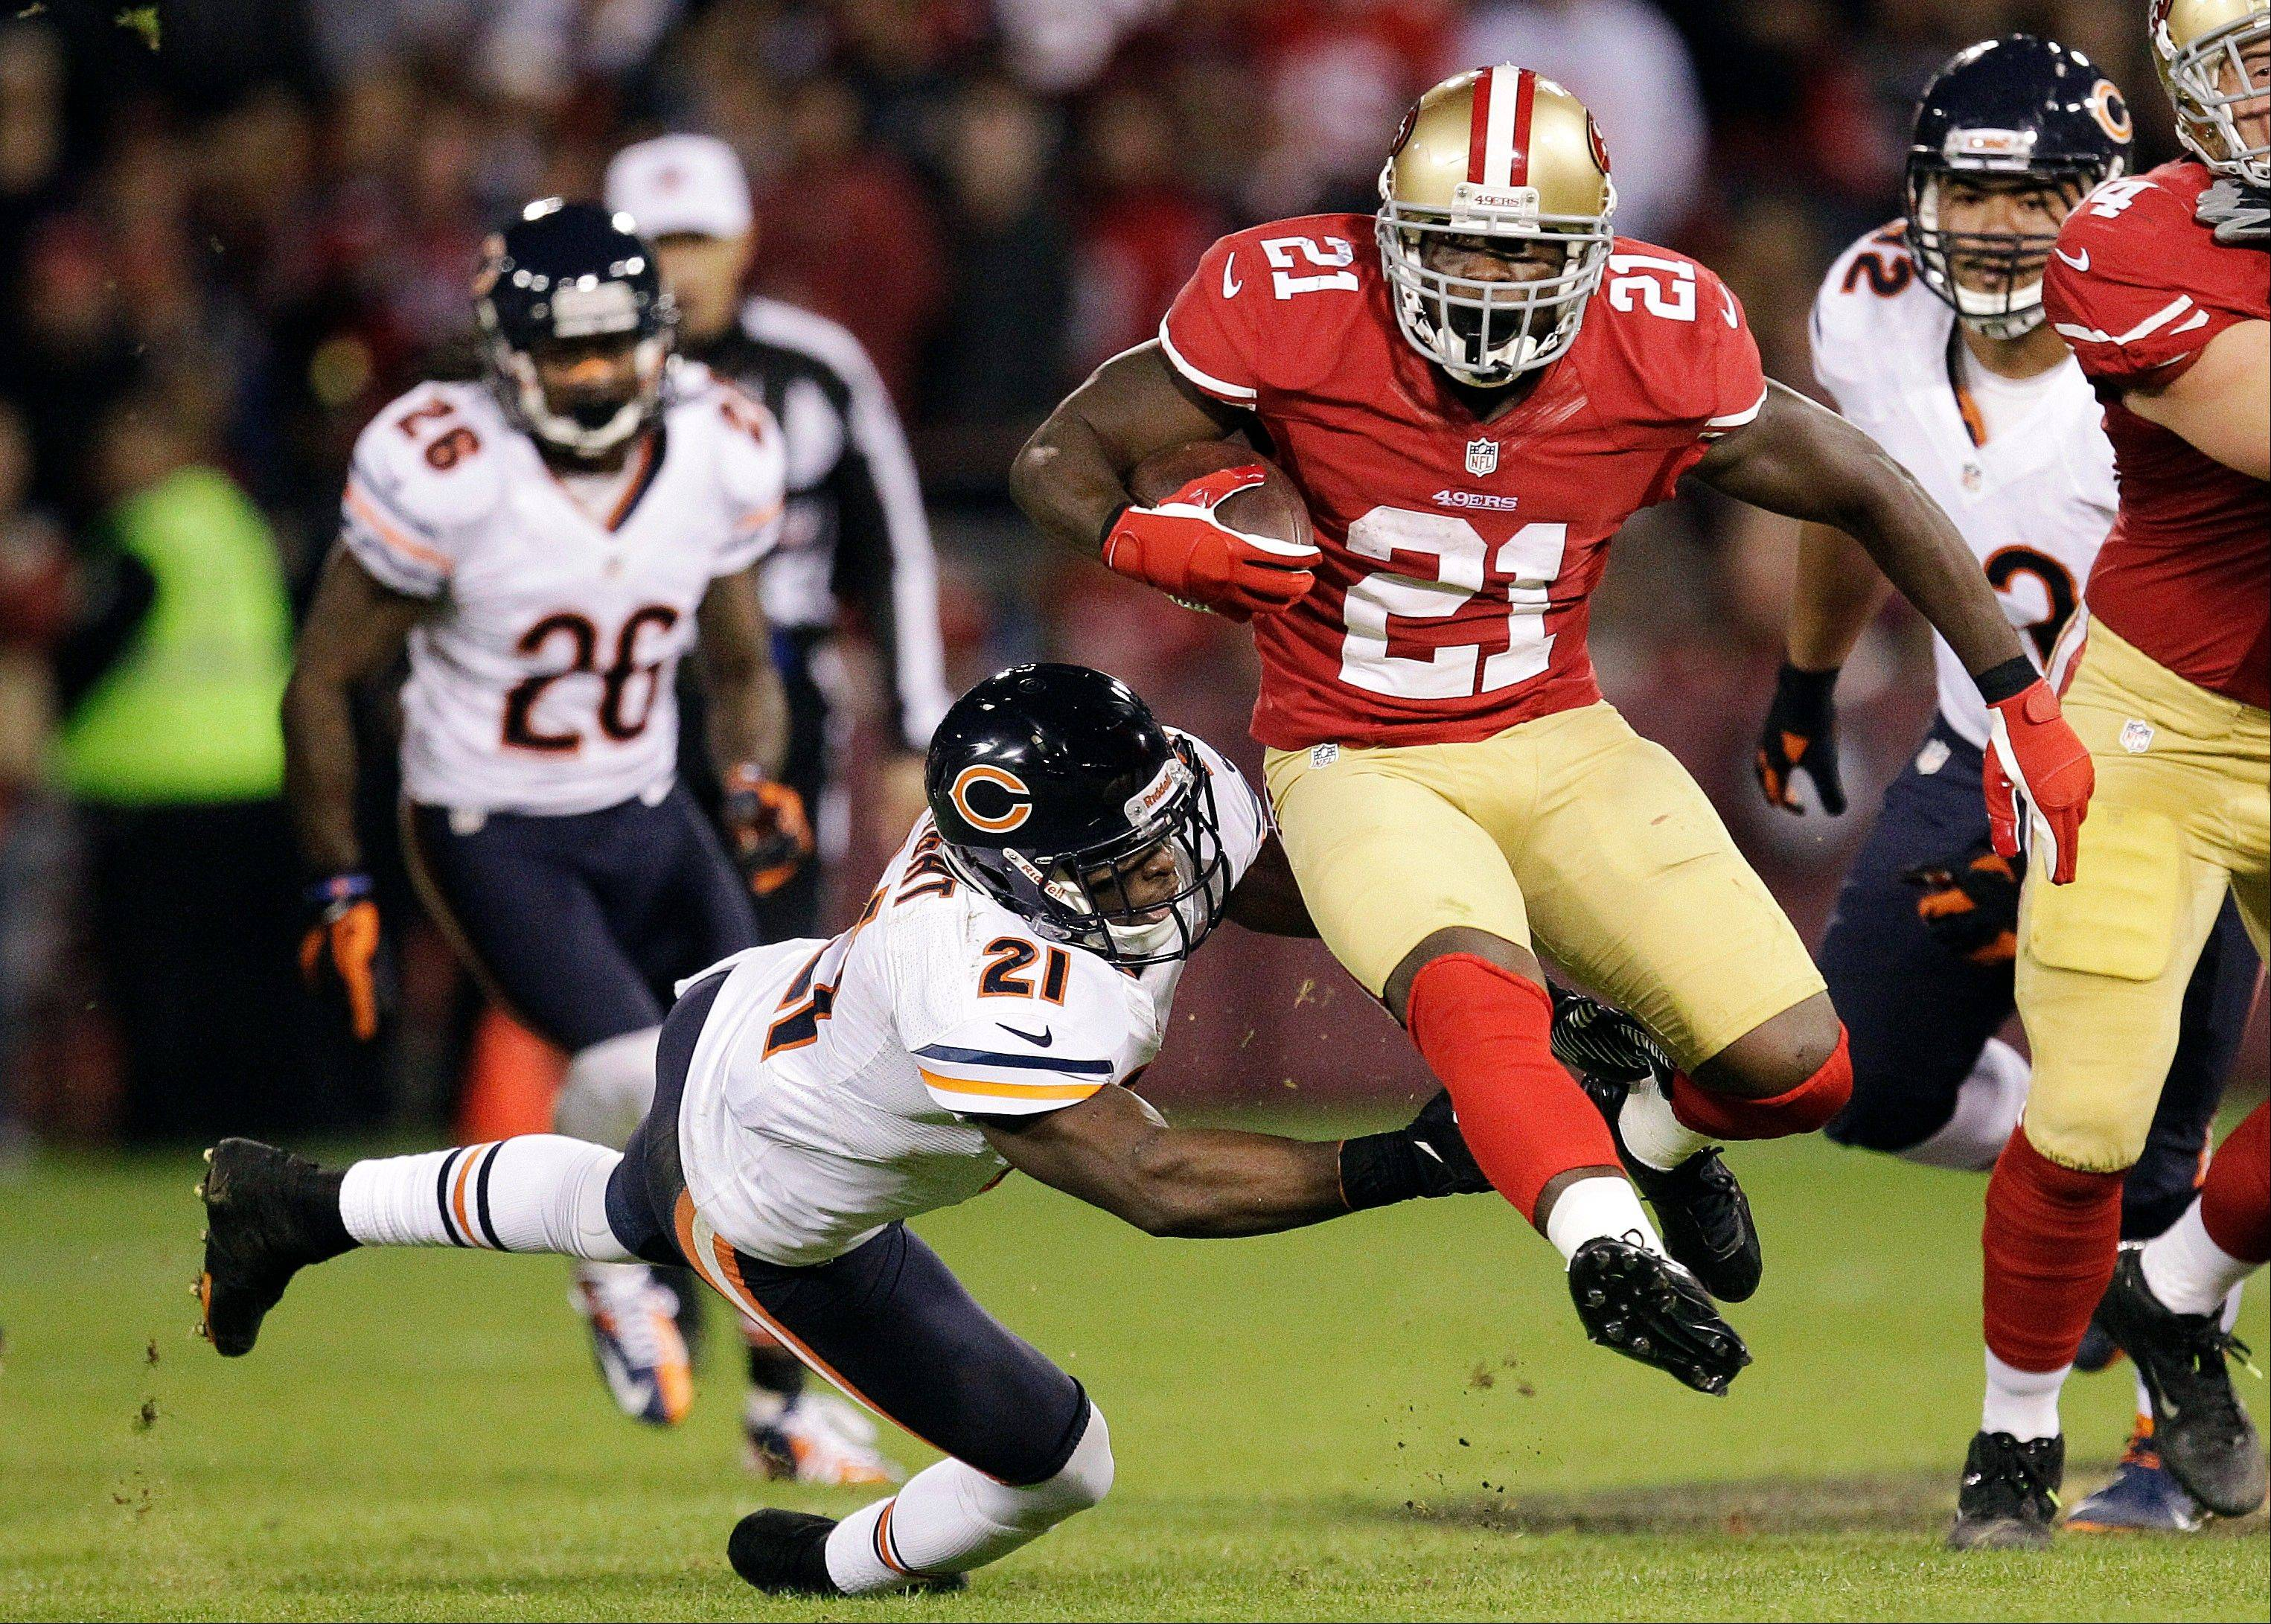 San Francisco 49ers running back Frank Gore leaps past Chicago Bears strong safety Major Wright during the second quarter.